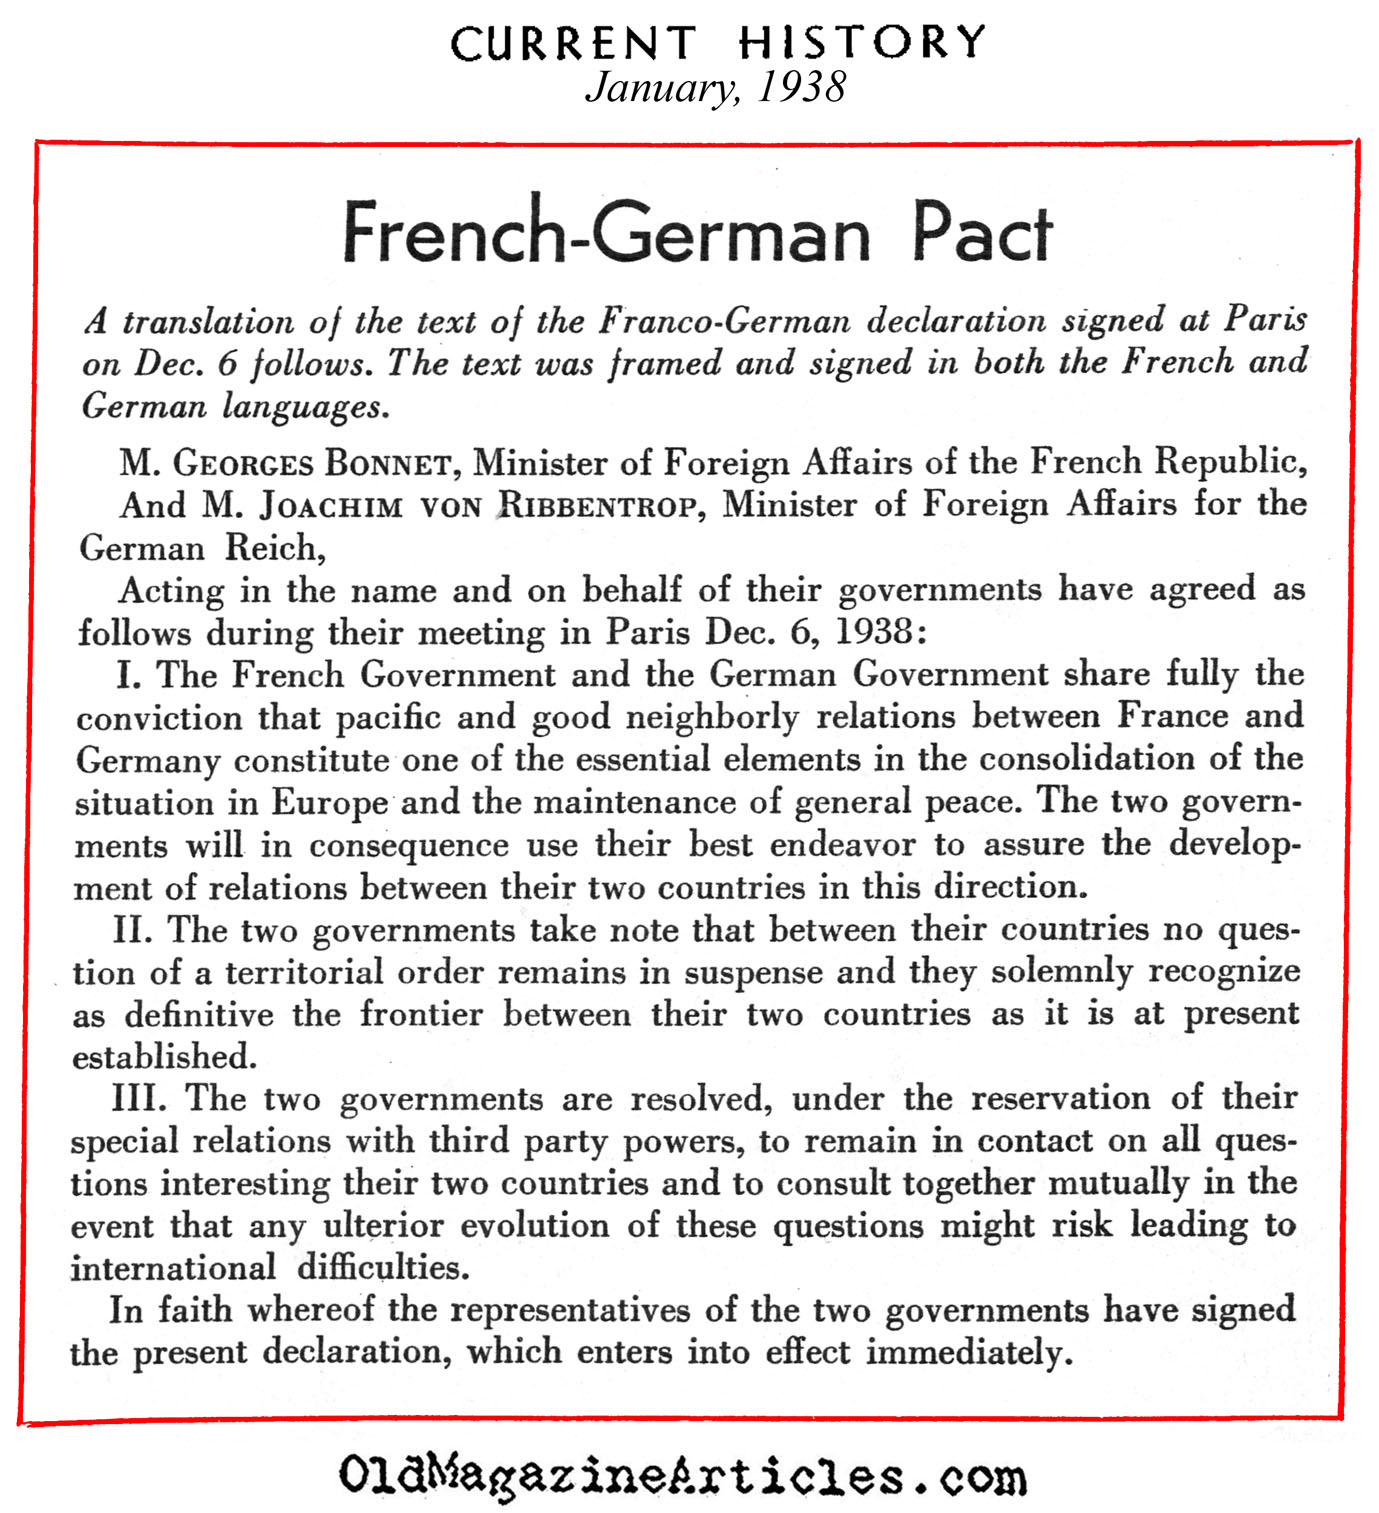 The French-German Non-Aggression Pact (Current History, 1938)